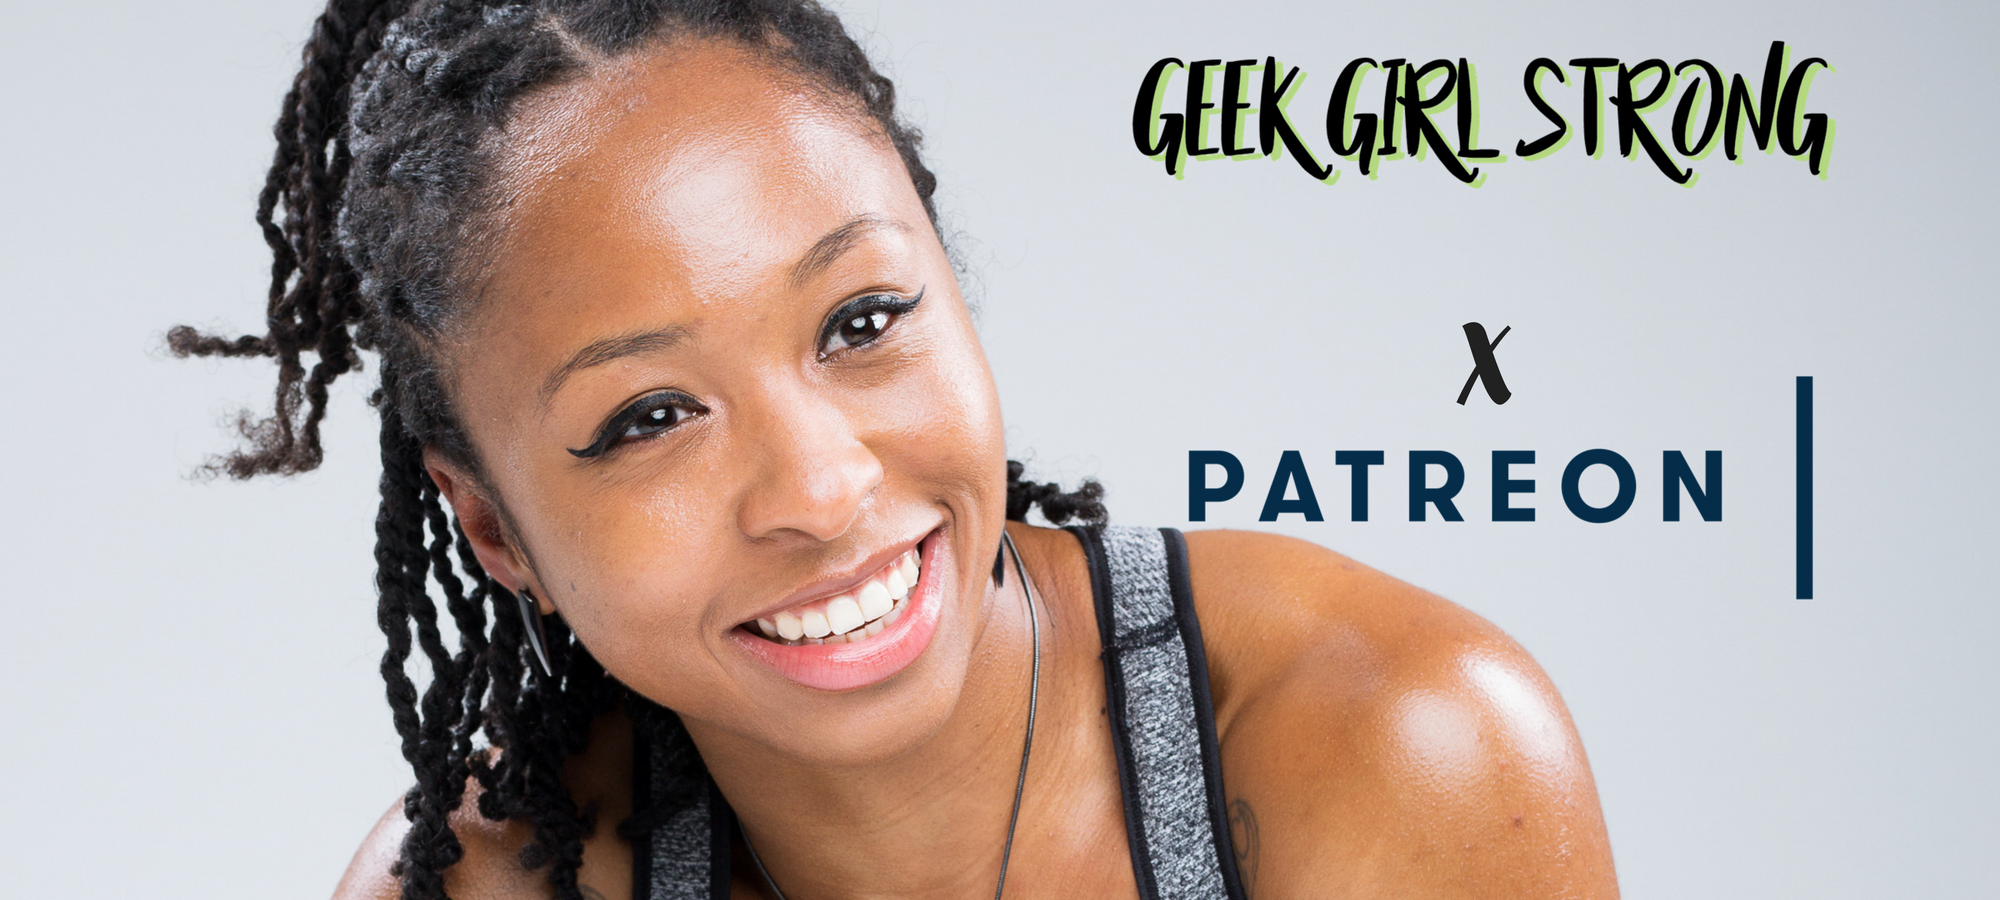 Monday Motivation | Geek Girl Strong on Patreon!  Have you been wanting to dip your toes into the pool of nerdy/geeky fitness & wellness? This Monday, we have something to help with that!  March 12, 2018 by Robyn Warren